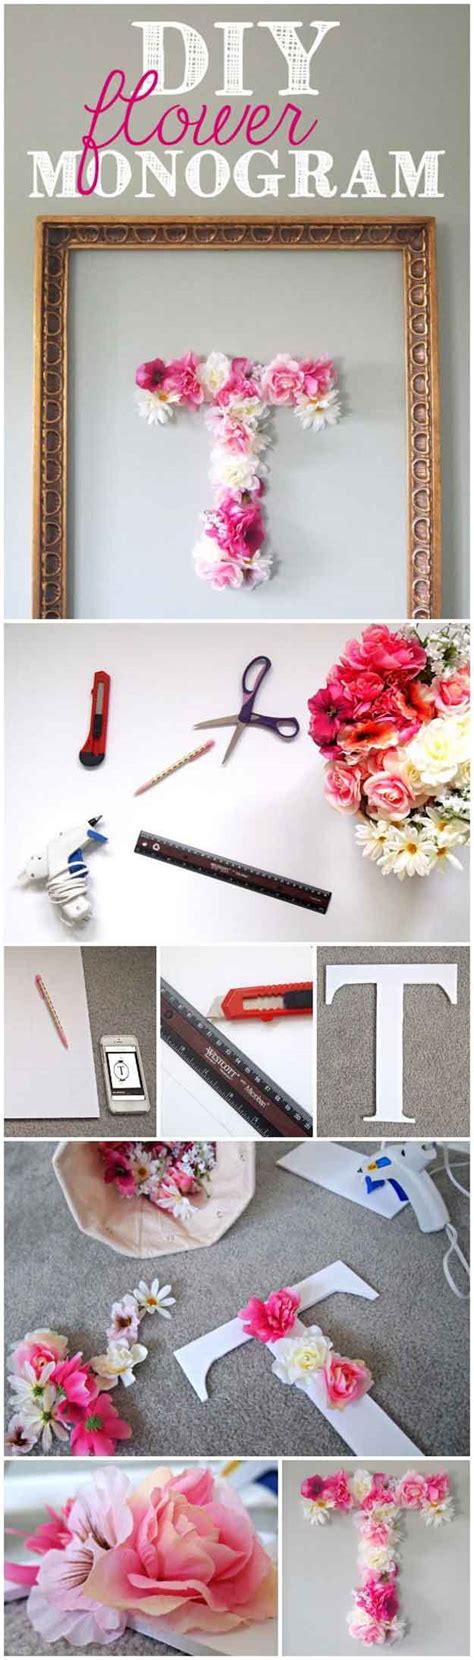 teen bedroom diy diy projects for teens bedroom diy ready